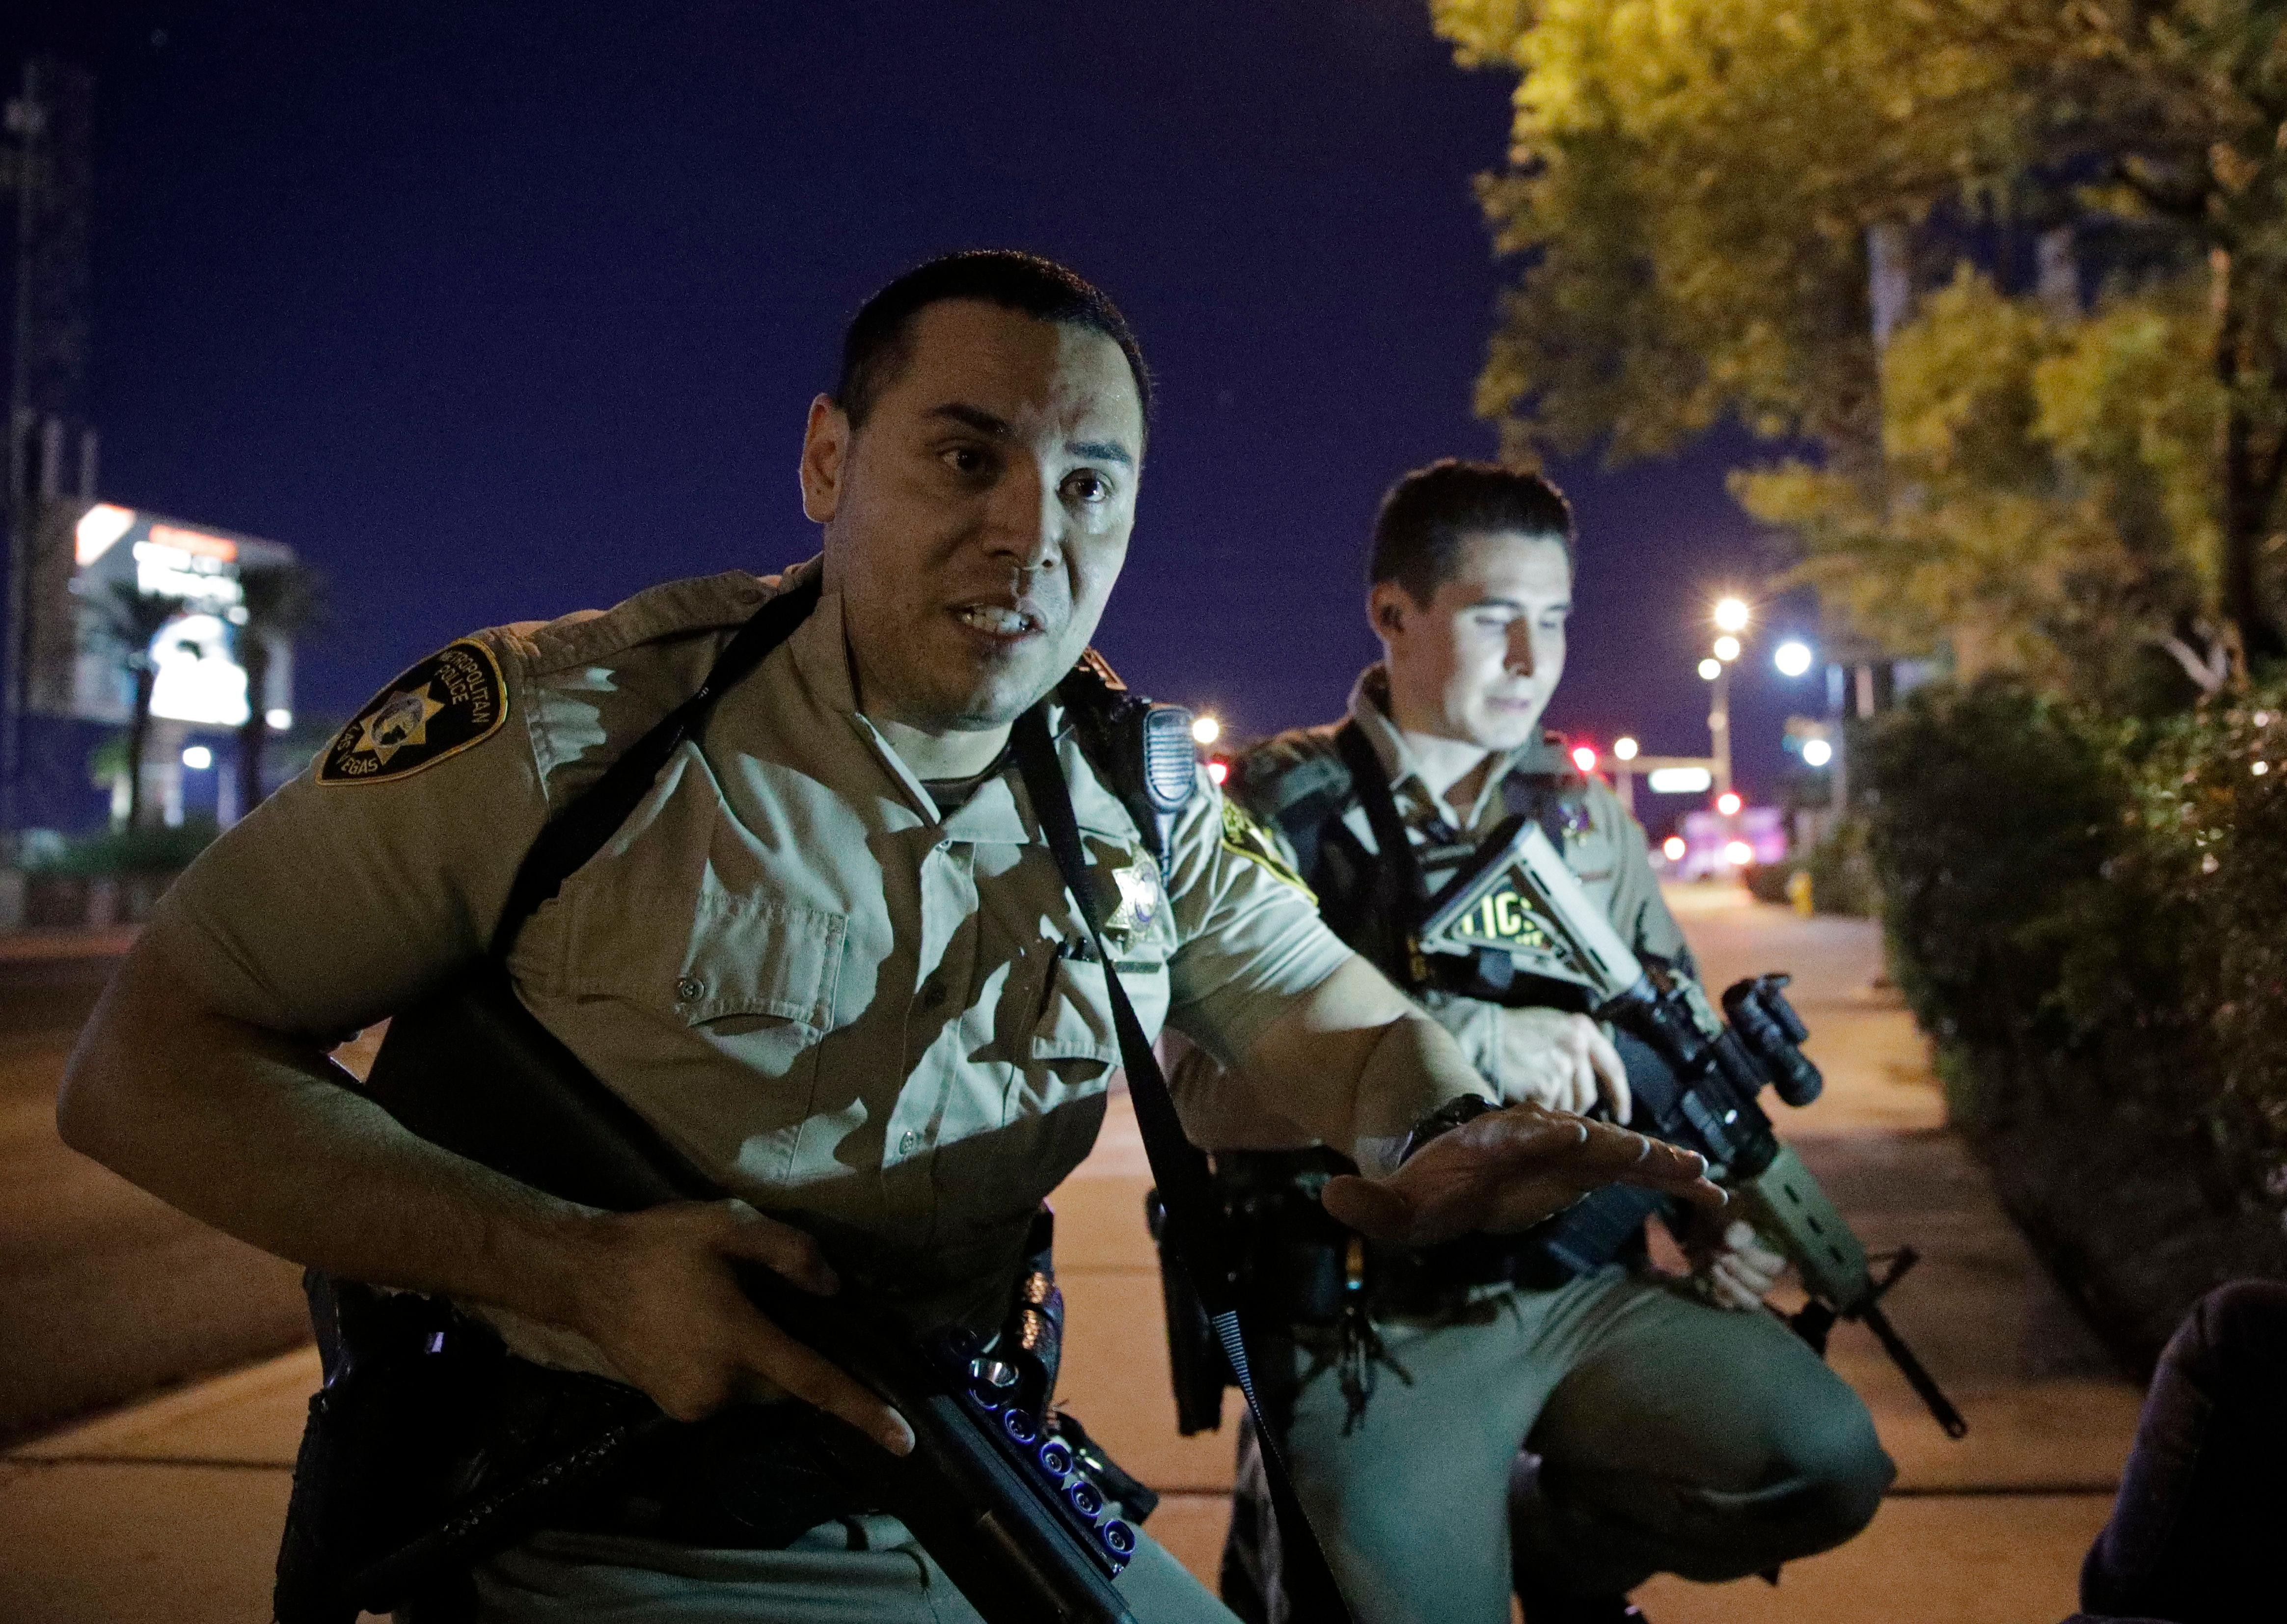 Police officers advise people to take cover near the scene of a shooting near the Mandalay Bay resort and casino on the Las Vegas Strip, Sunday, Oct. 1, 2017, in Las Vegas. (AP Photo/John Locher)